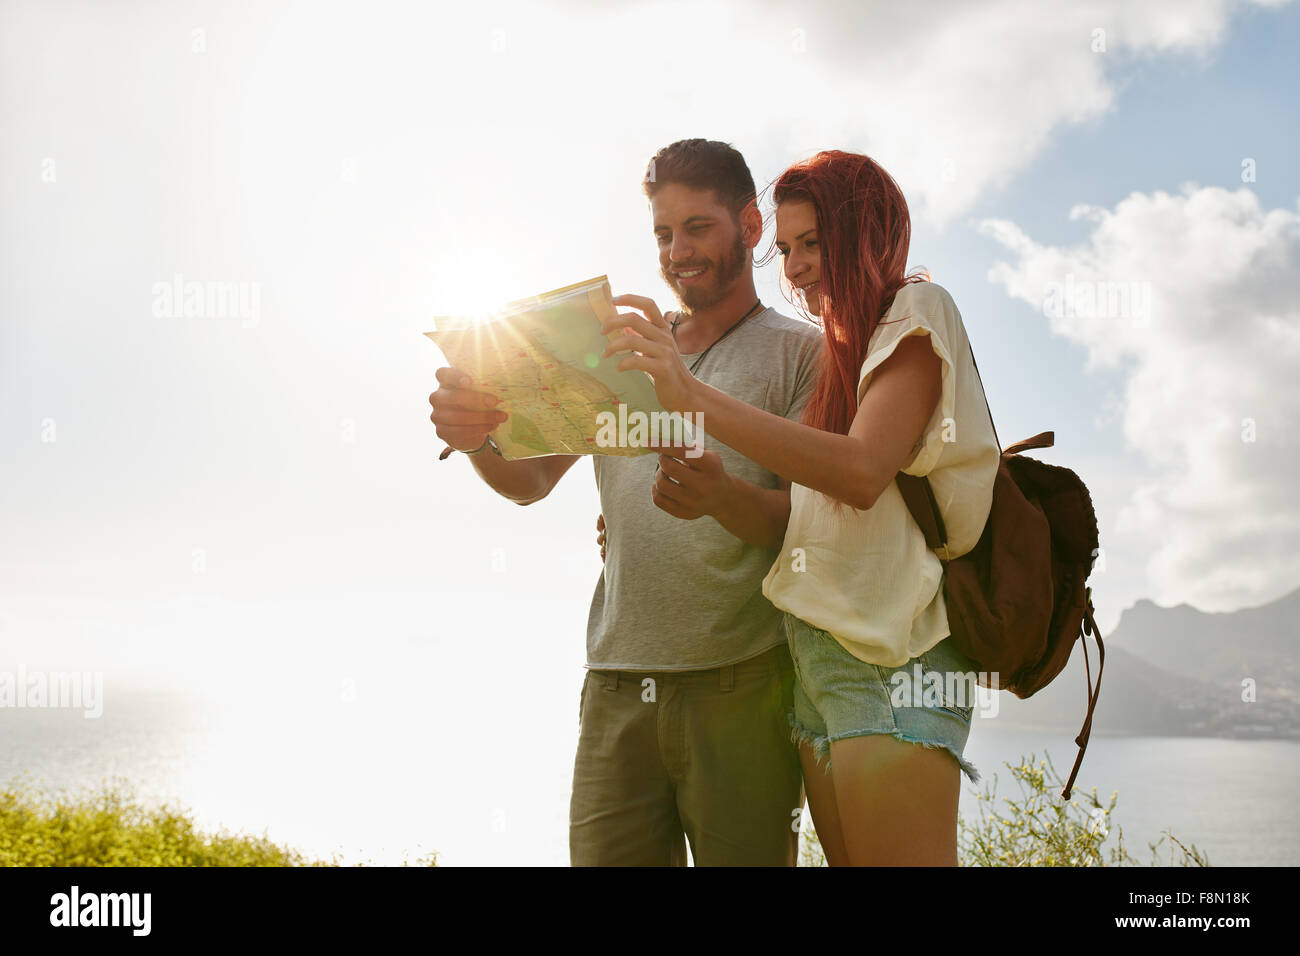 Man and woman looking for directions on map. Couple stopping to check their map while walking in countryside. - Stock Image